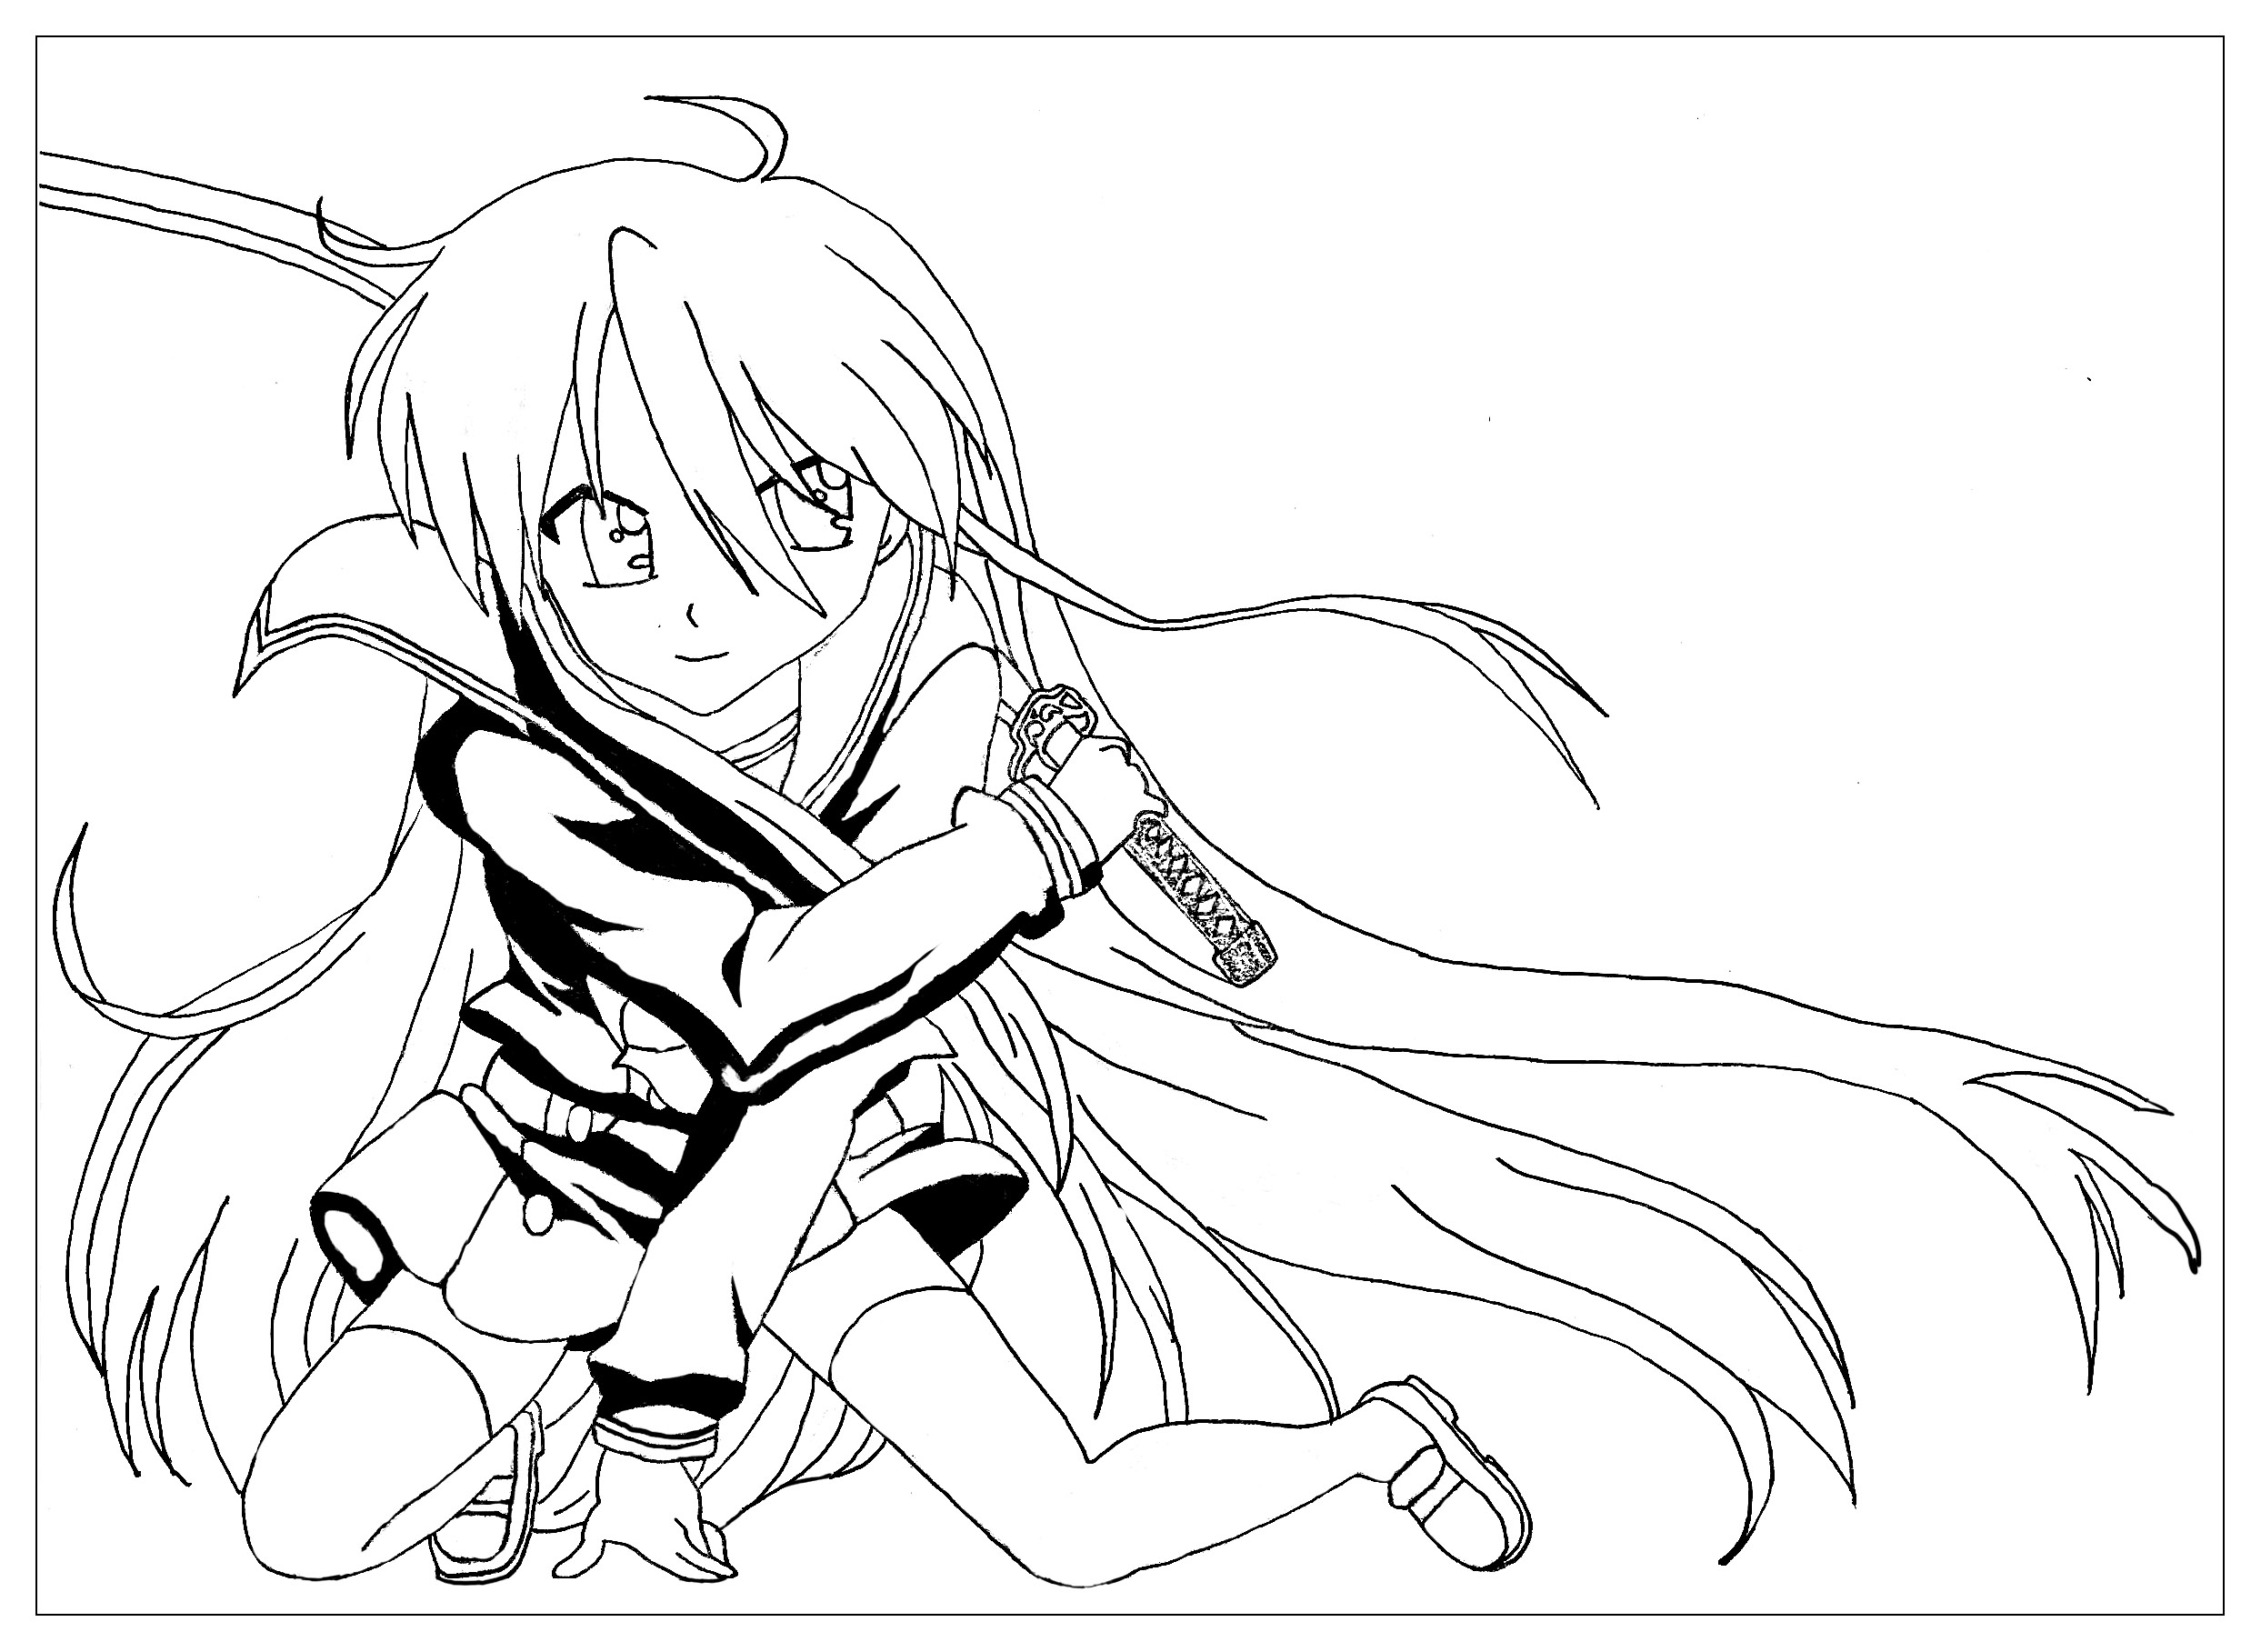 Original Manga coloring page : The saber warrior girl